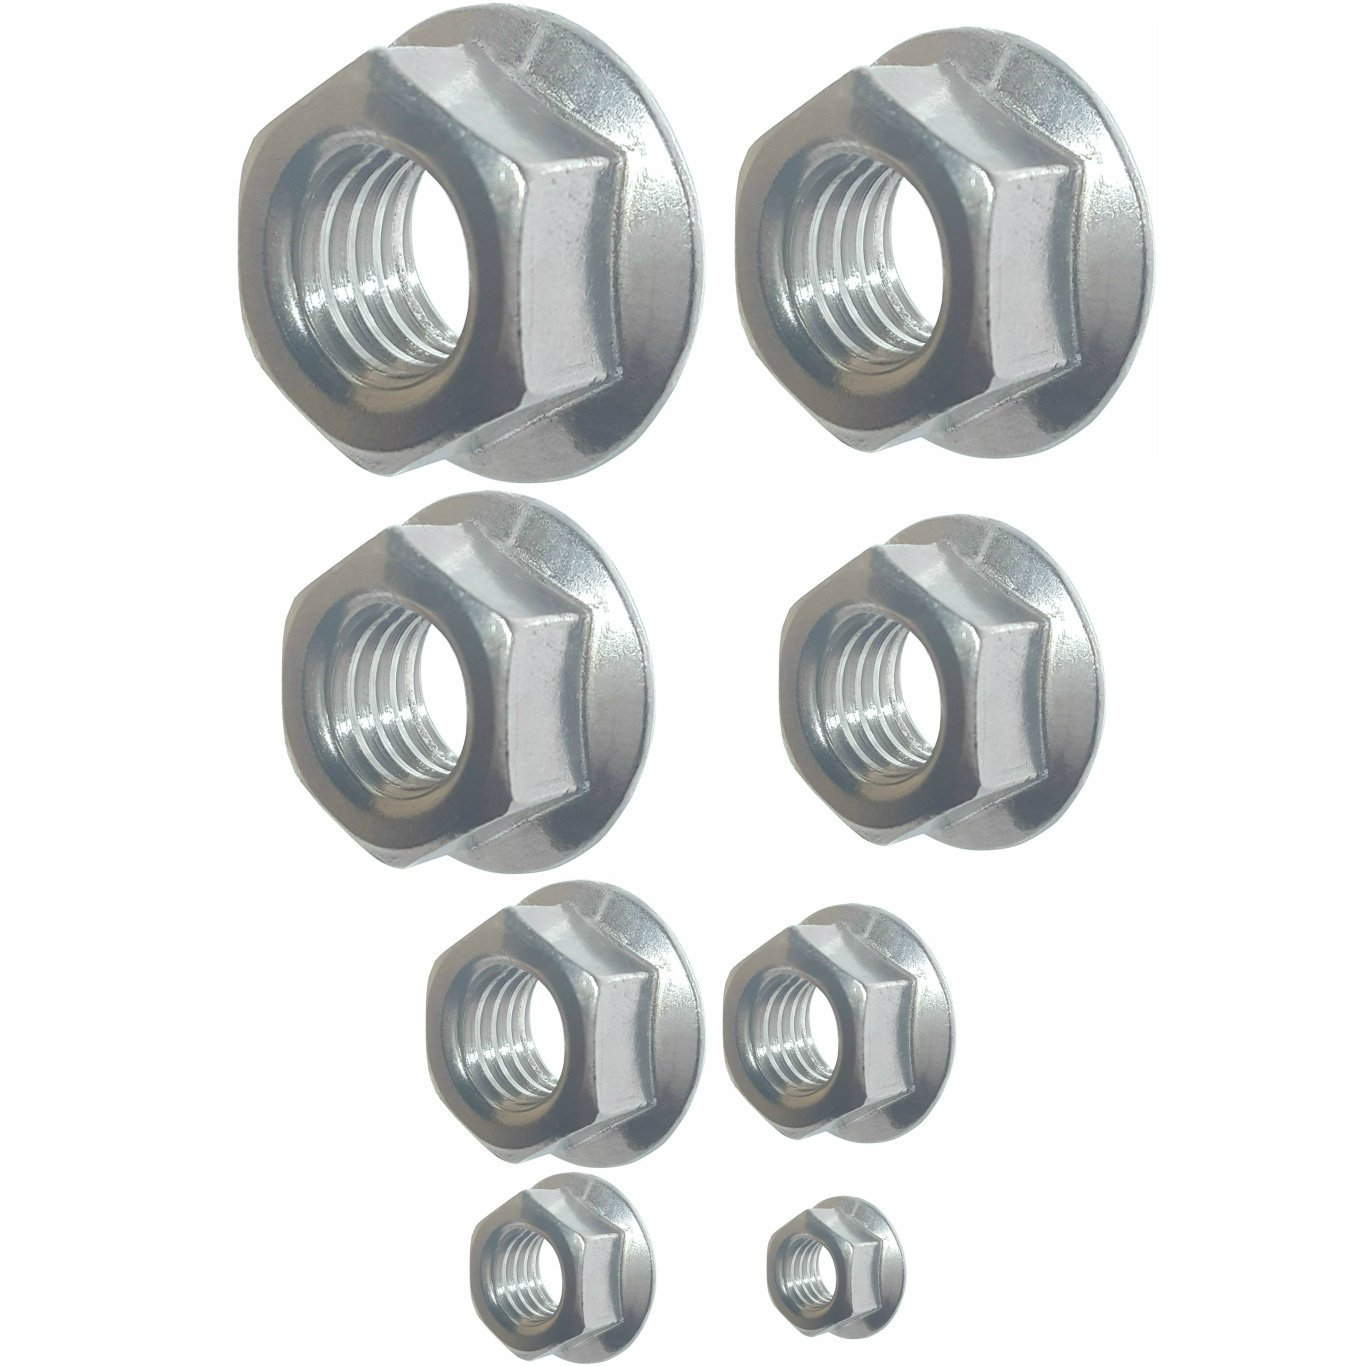 600 Pieces! 1//4 5//16 3//8 7//16 1//2 Serrated Hex Flange Lock Nut Assortment